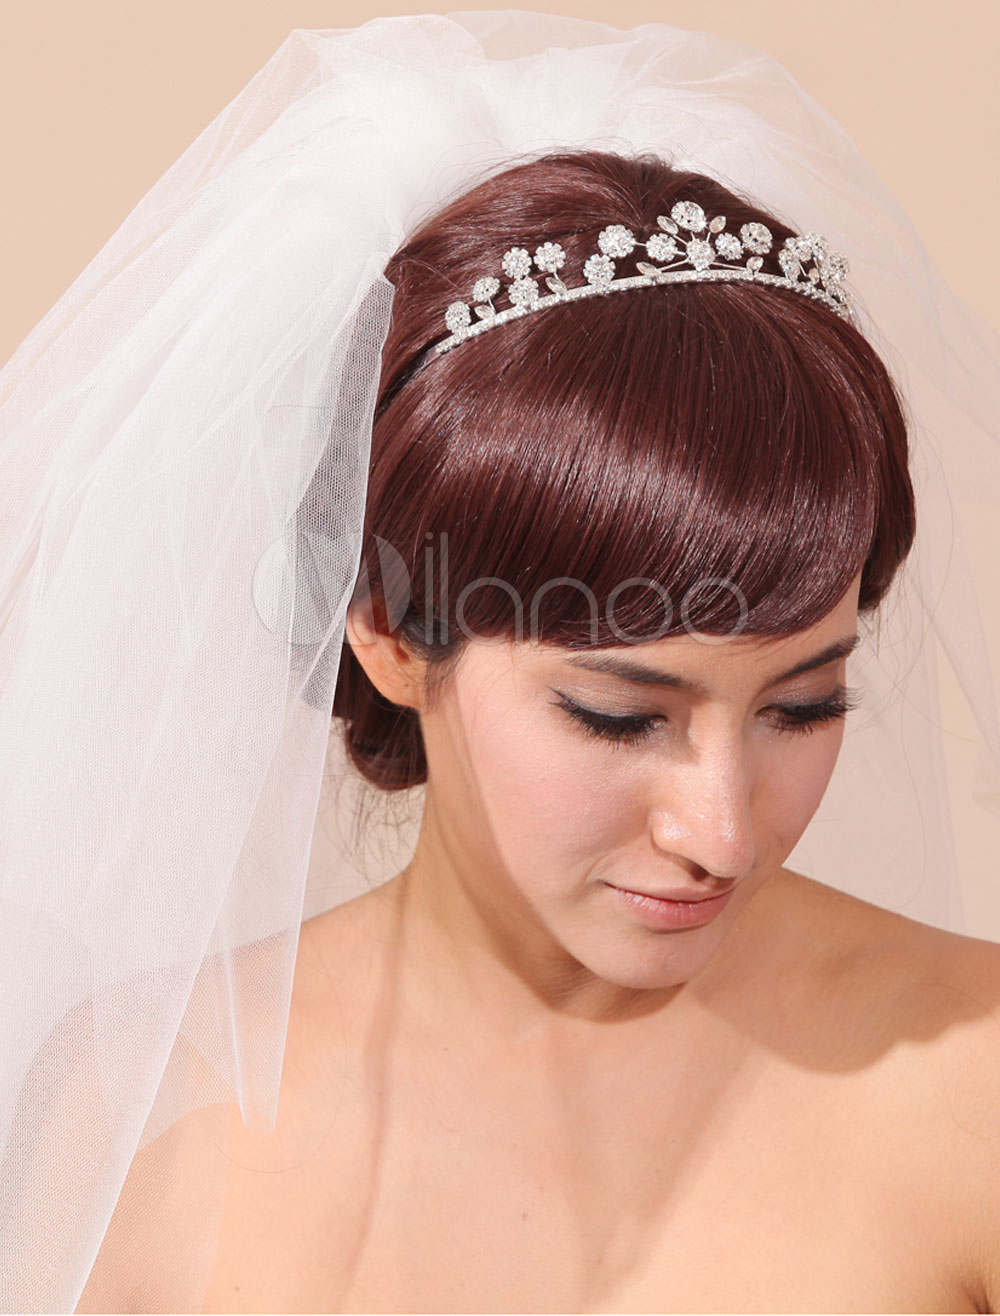 White Wedding Veil Tulle Cut Edge 3-Tier Bridal Veil With Rhinestone(4 Hairpins Included)